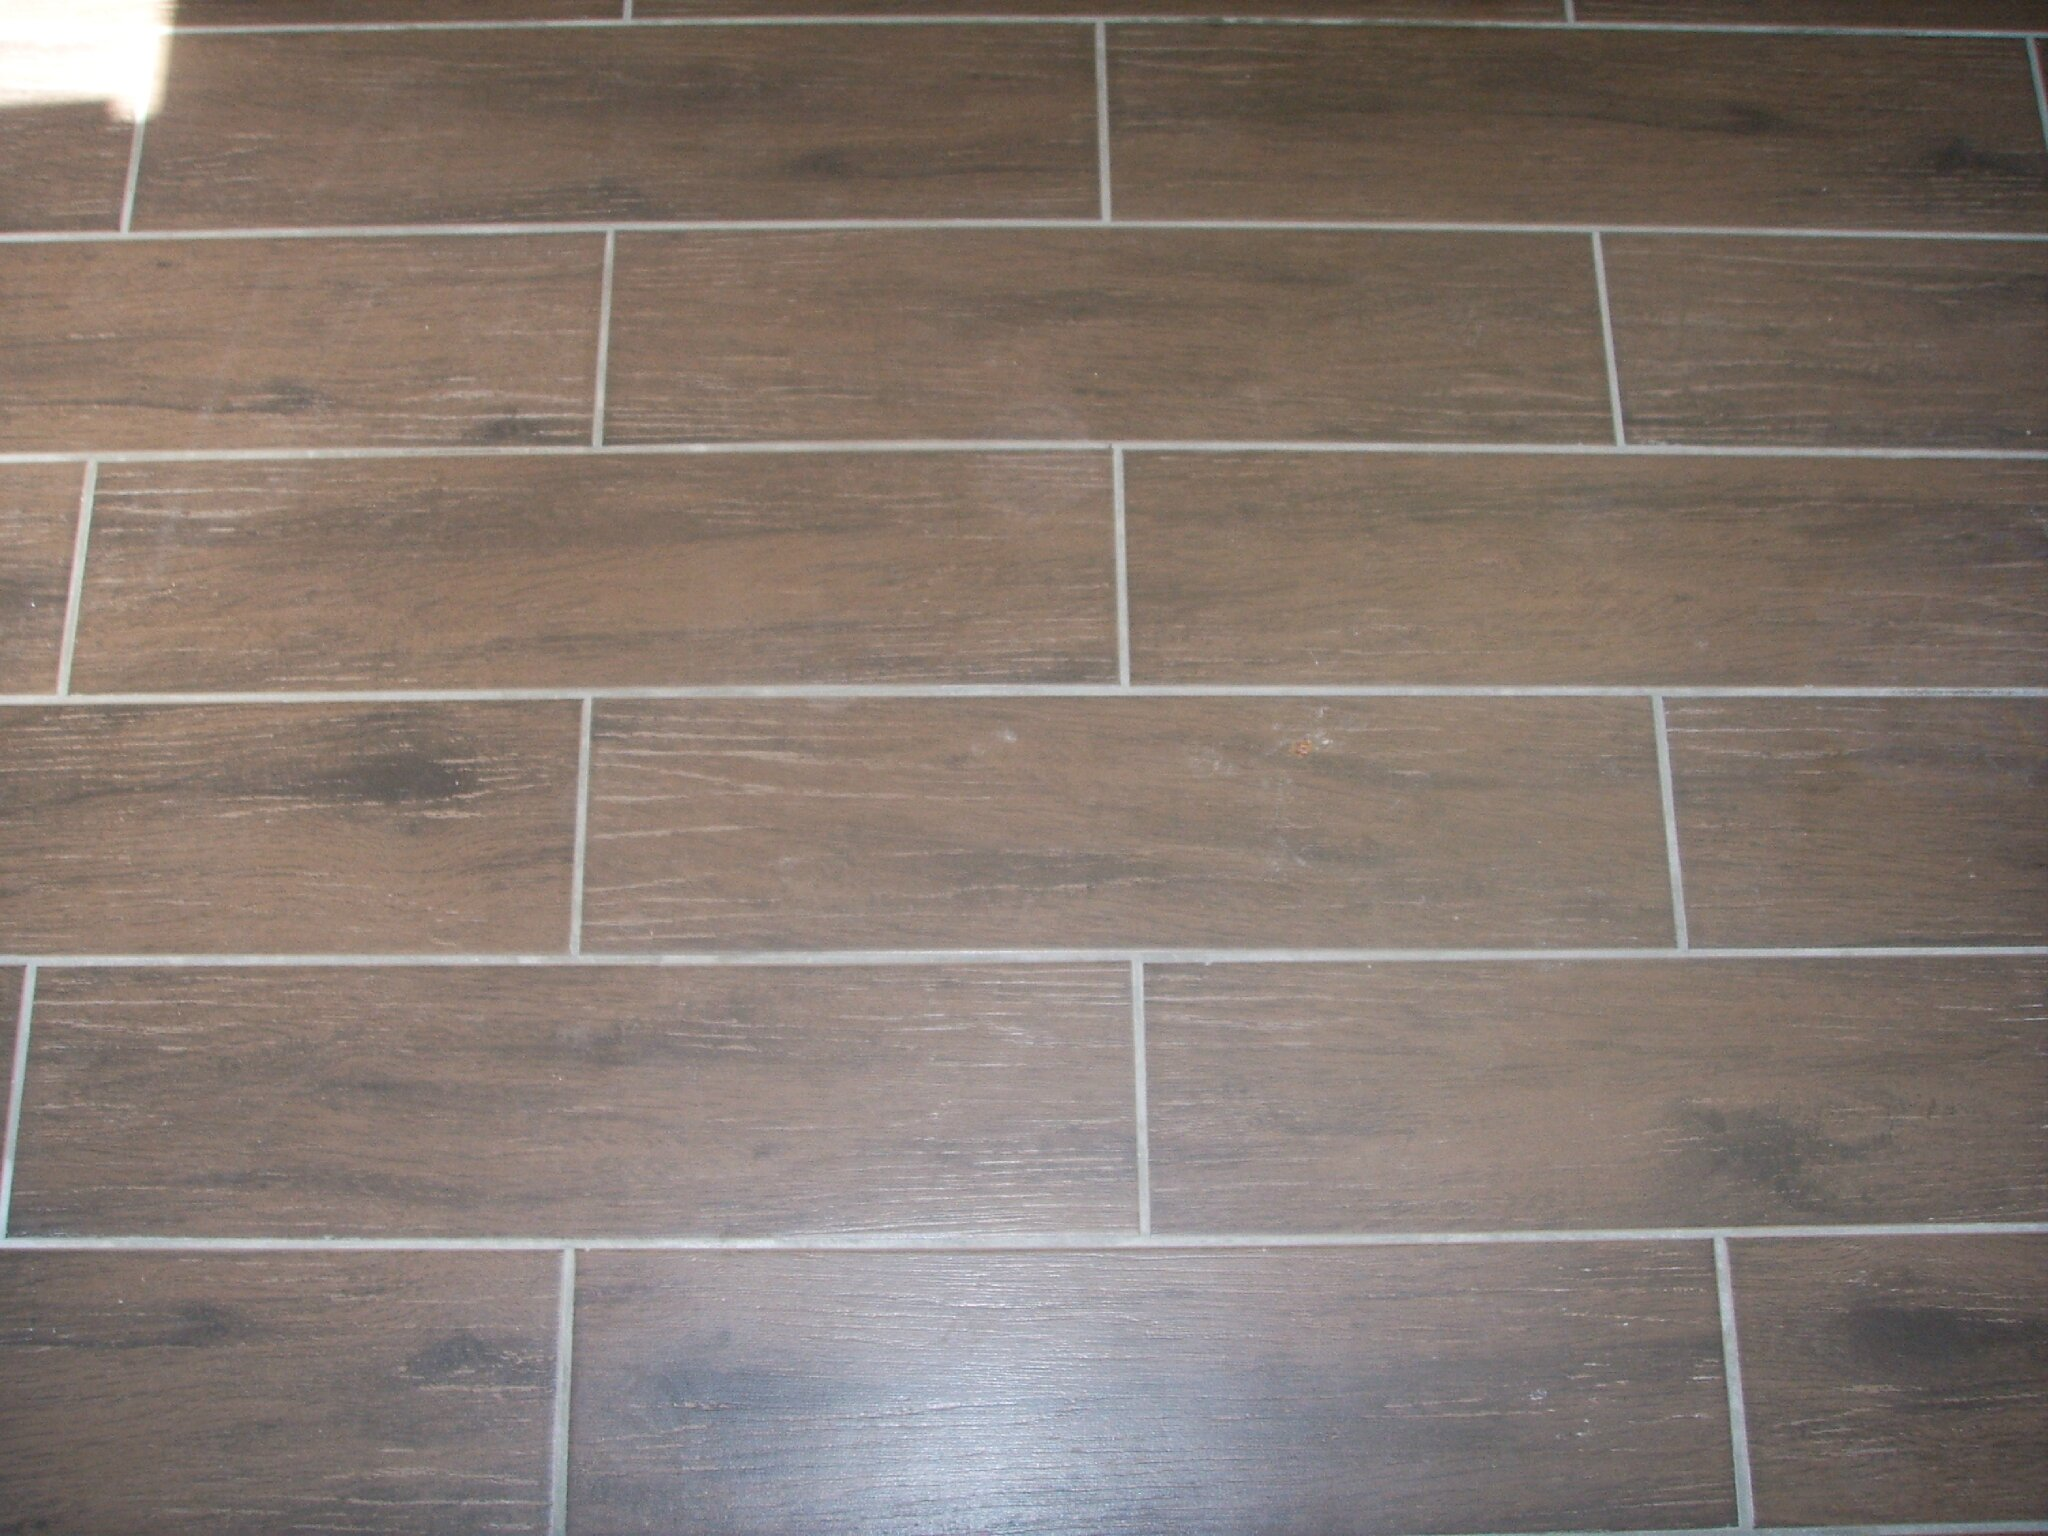 Carrelage finition for Carrelage imitation parquet pour exterieur